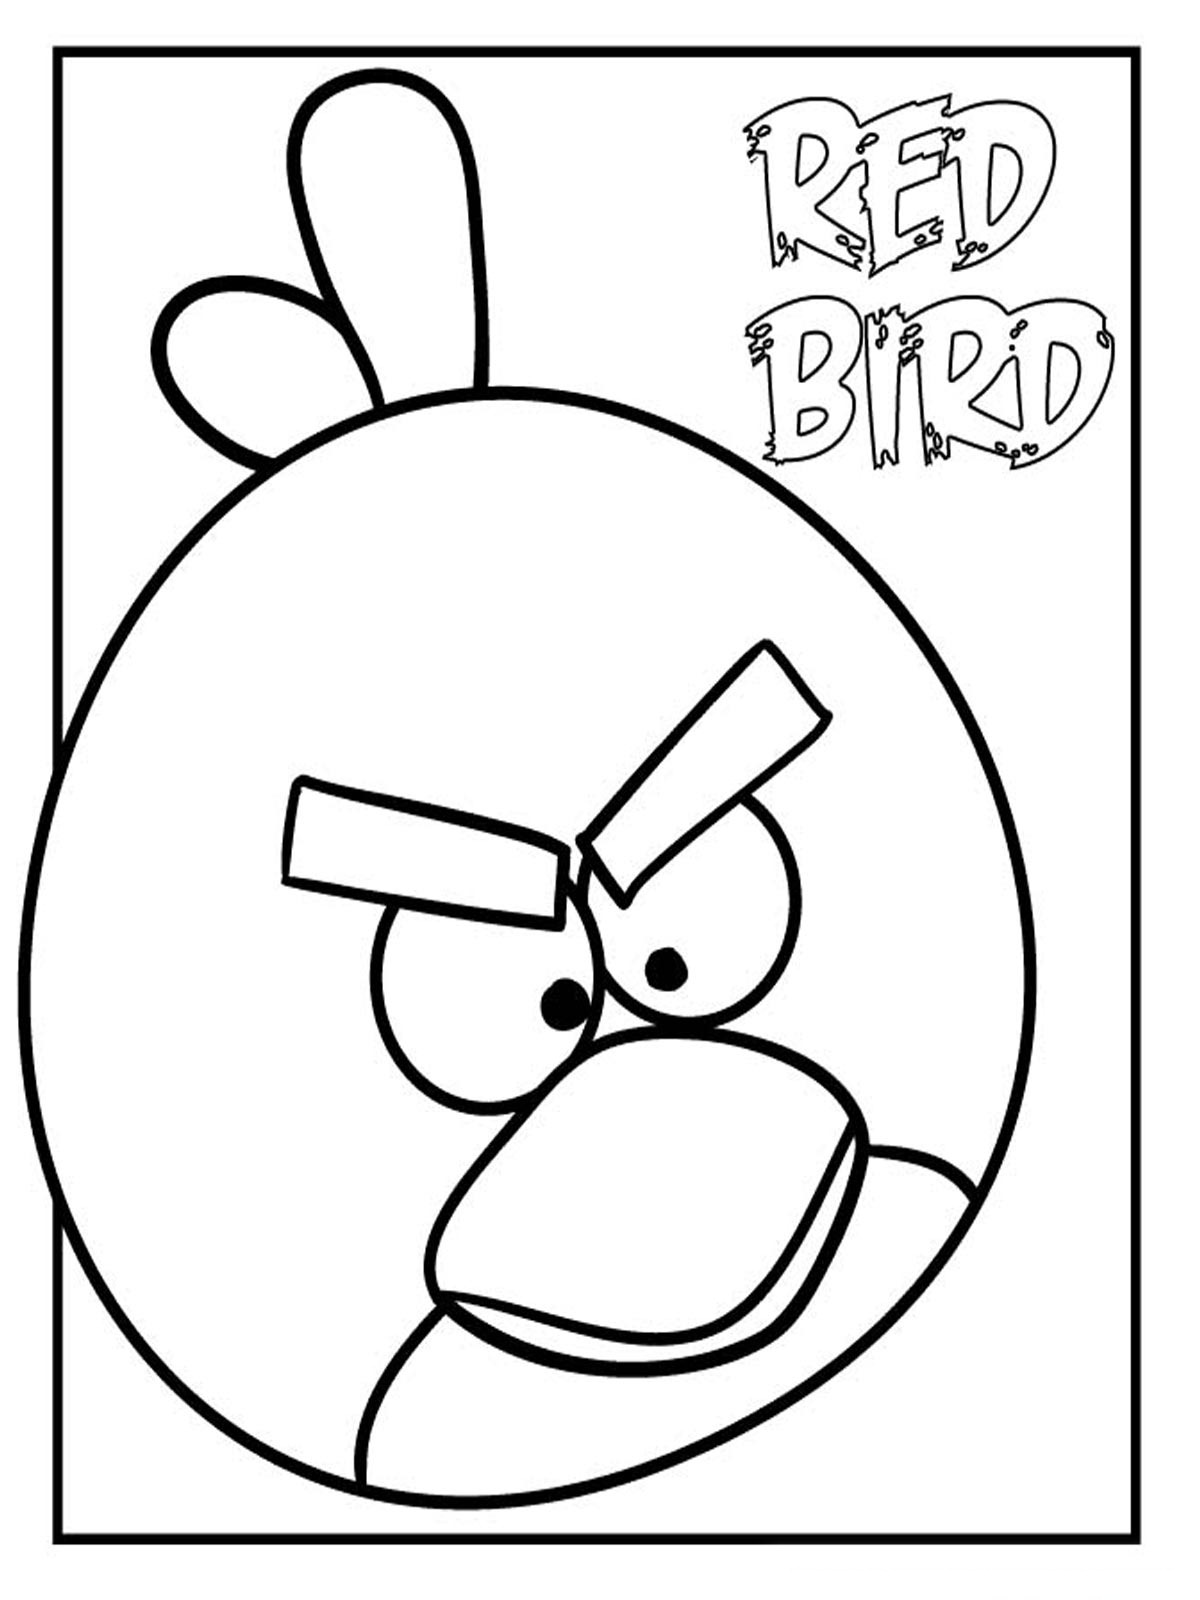 angry birds pictures to print angry birds epic coloring page blue birds bird birds to pictures print angry